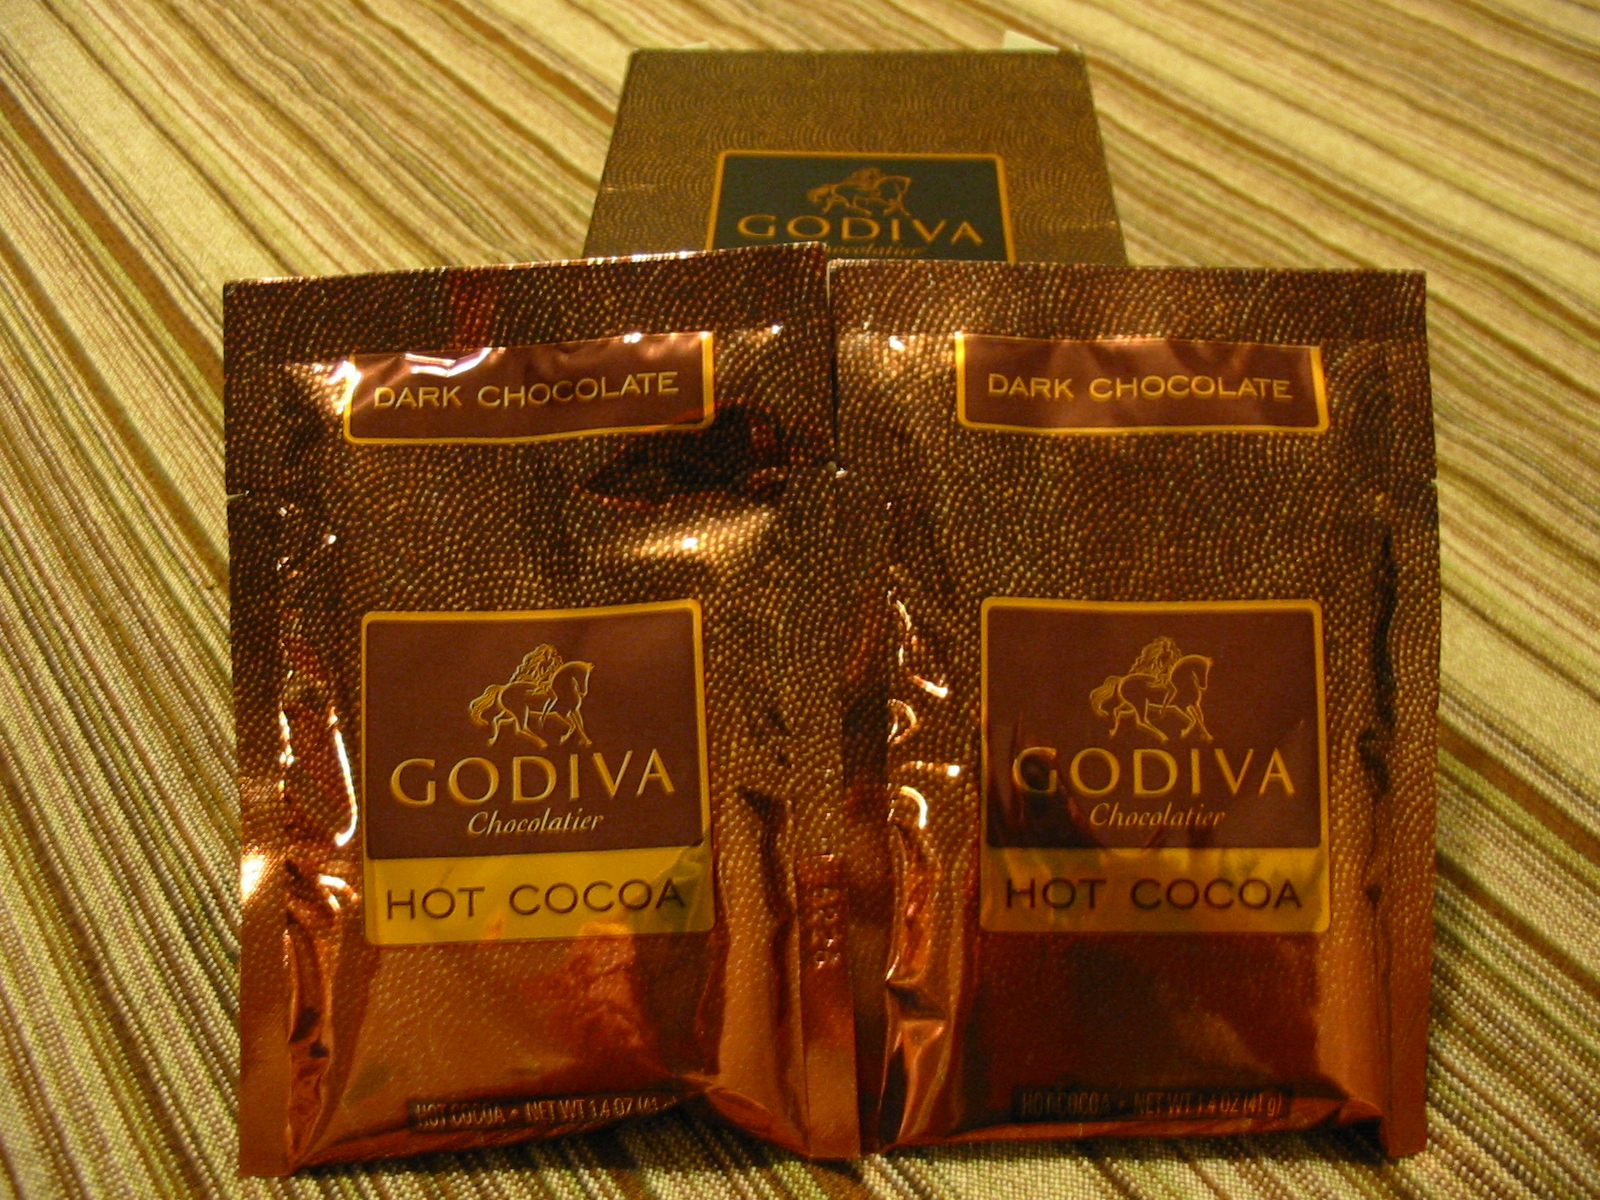 Is Godiva Dark Chocolate Good For You